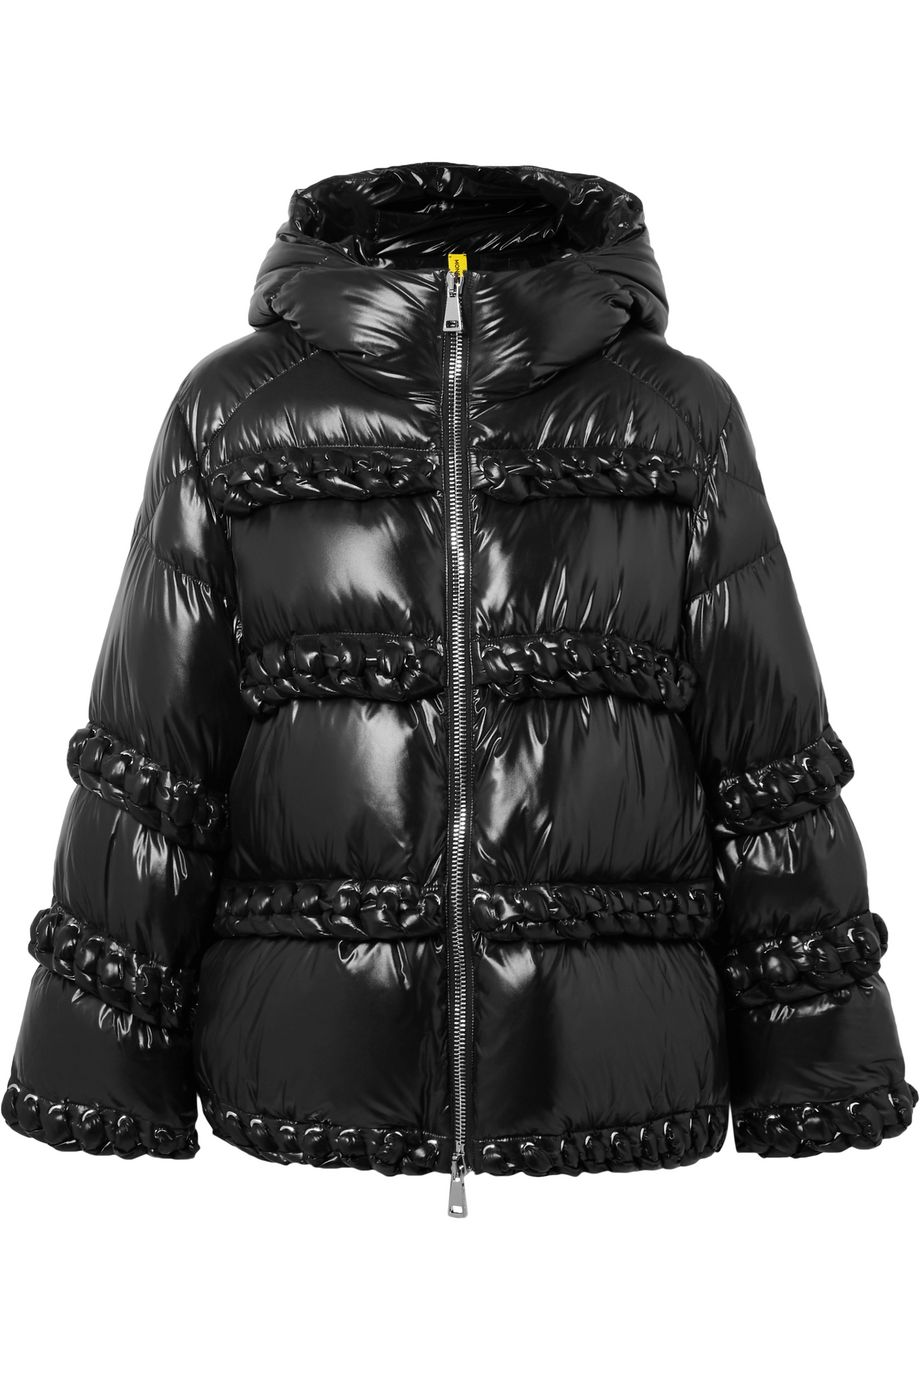 Moncler Genius + 6 Noir Kei Ninomiya whipstitched quilted shell down jacket